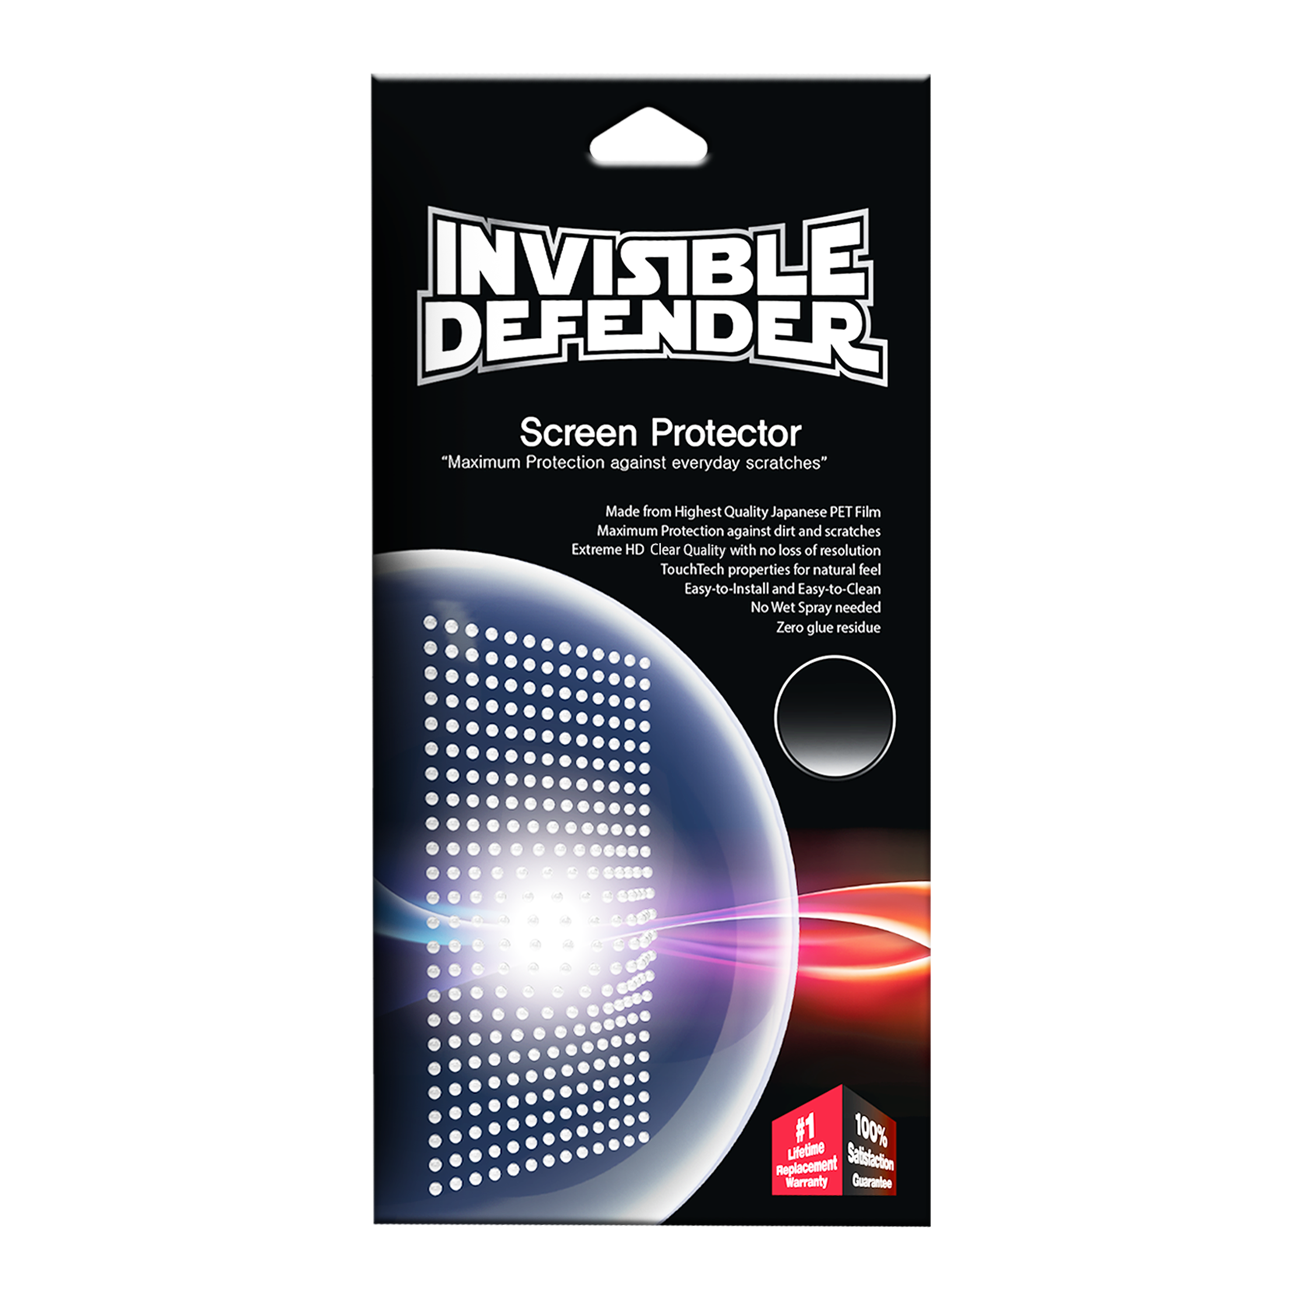 Invisible defender screen protector